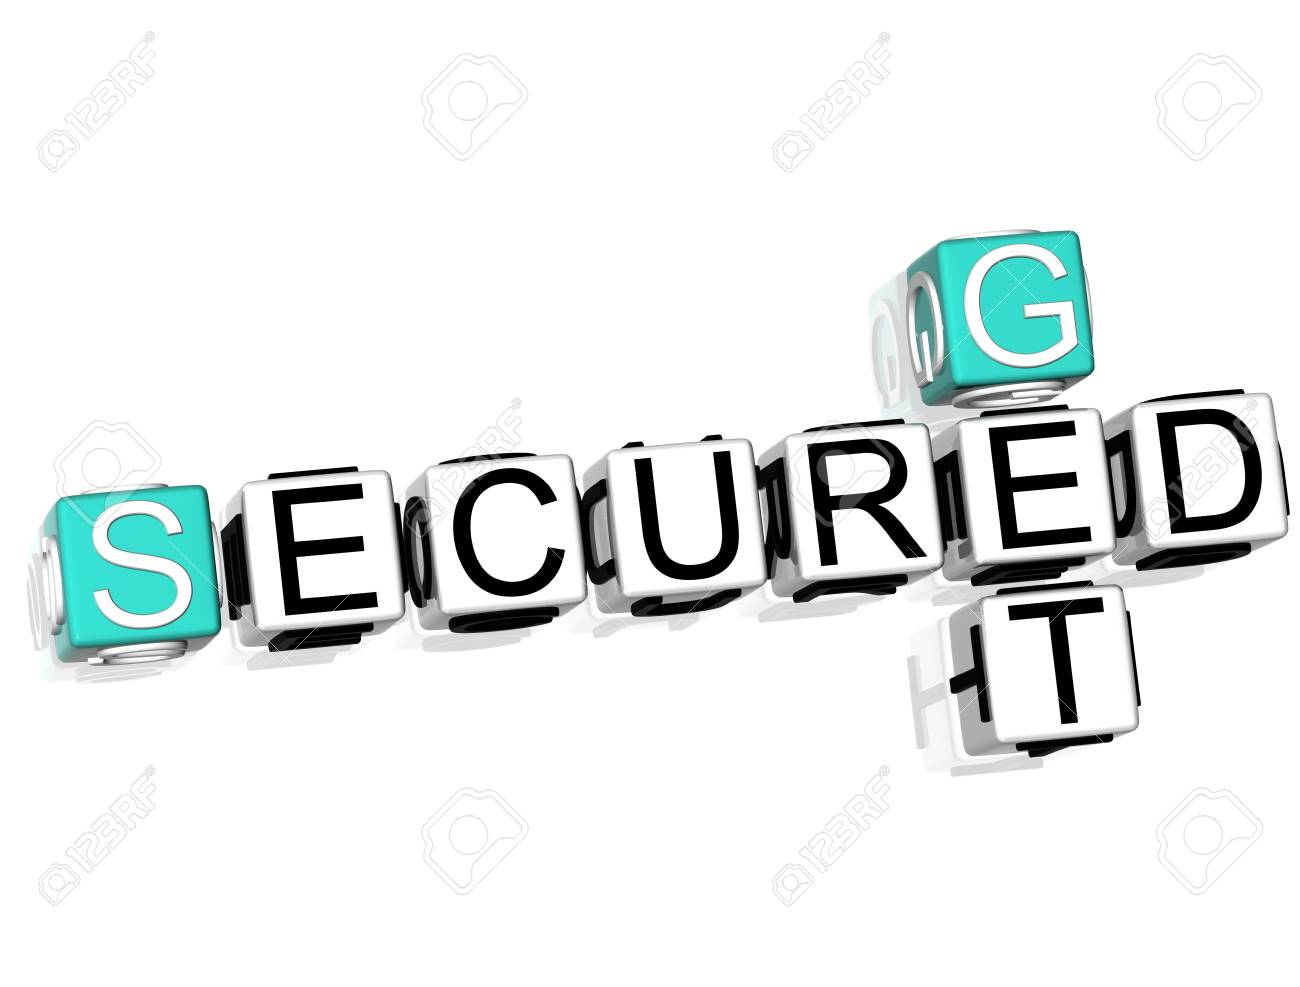 3D Get Secured Crossword on white background Stock Photo - 8901721